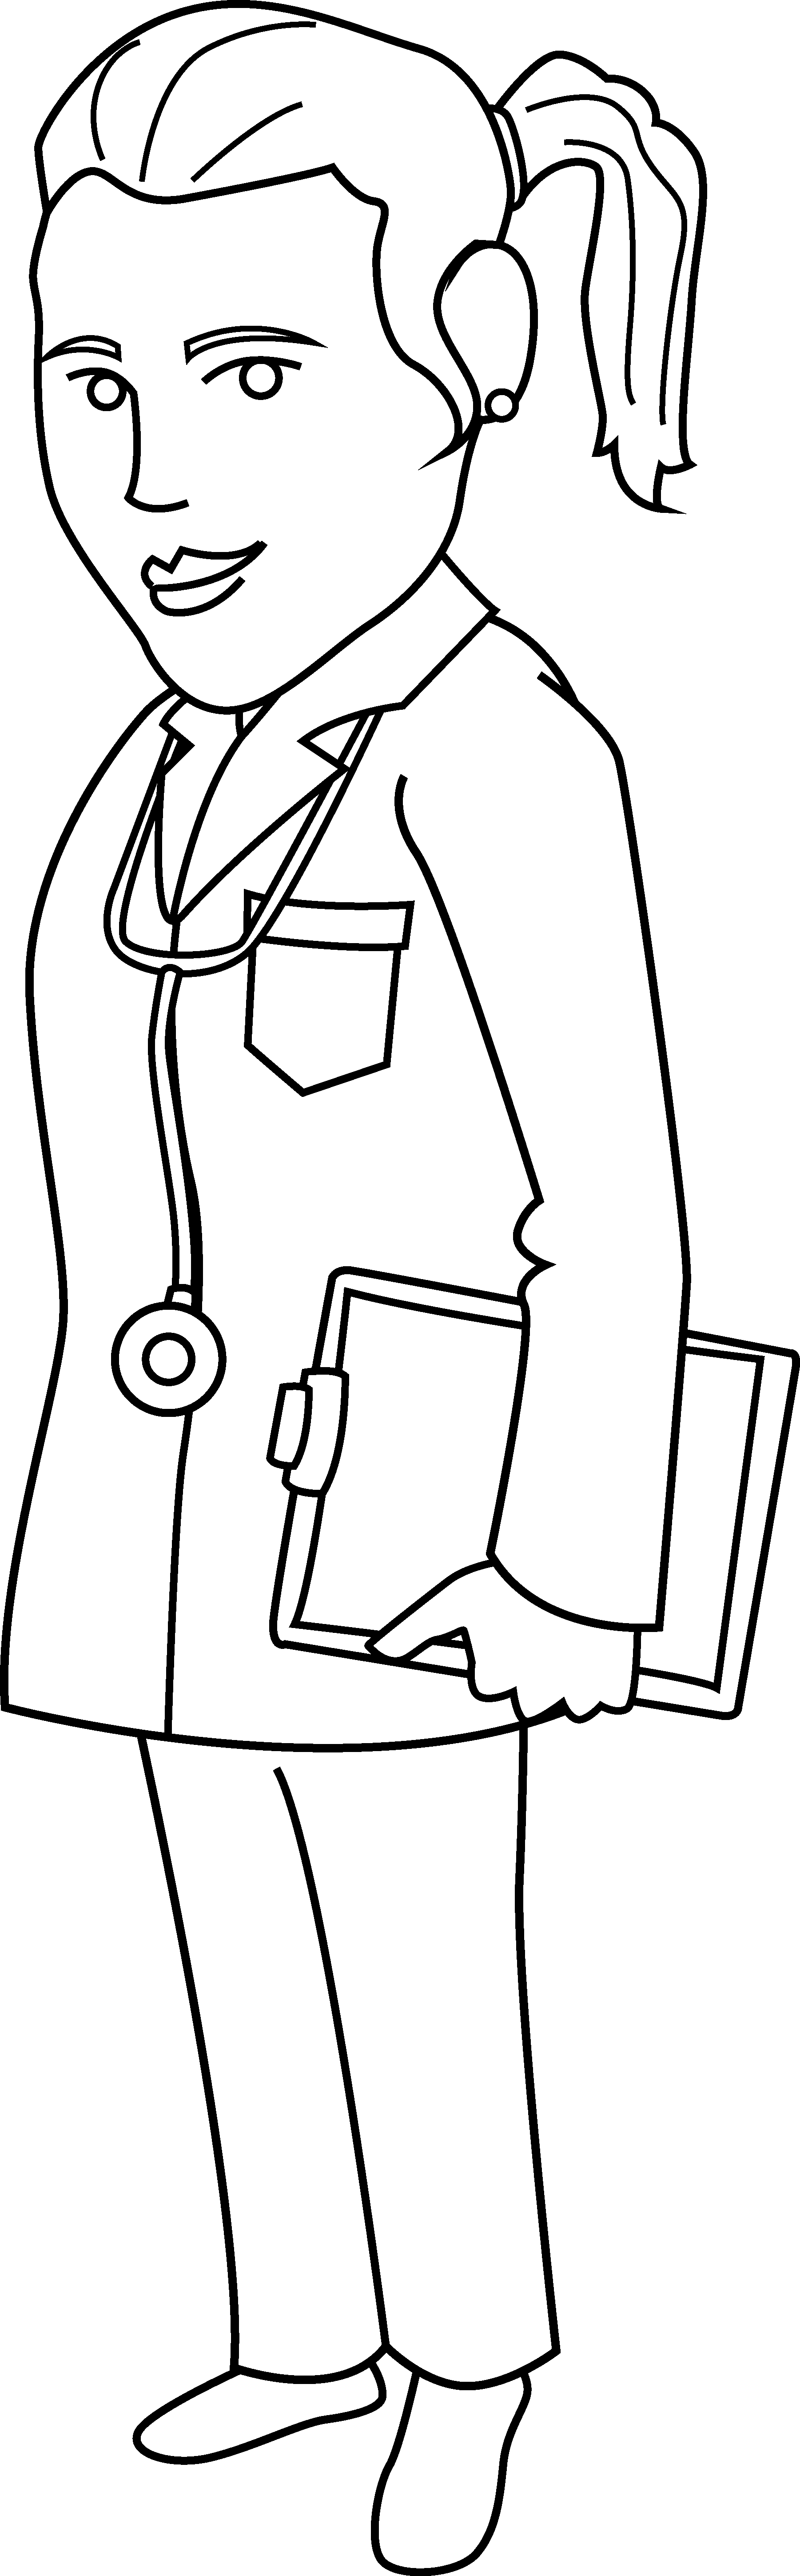 image black and white library Doctor Coloring Page